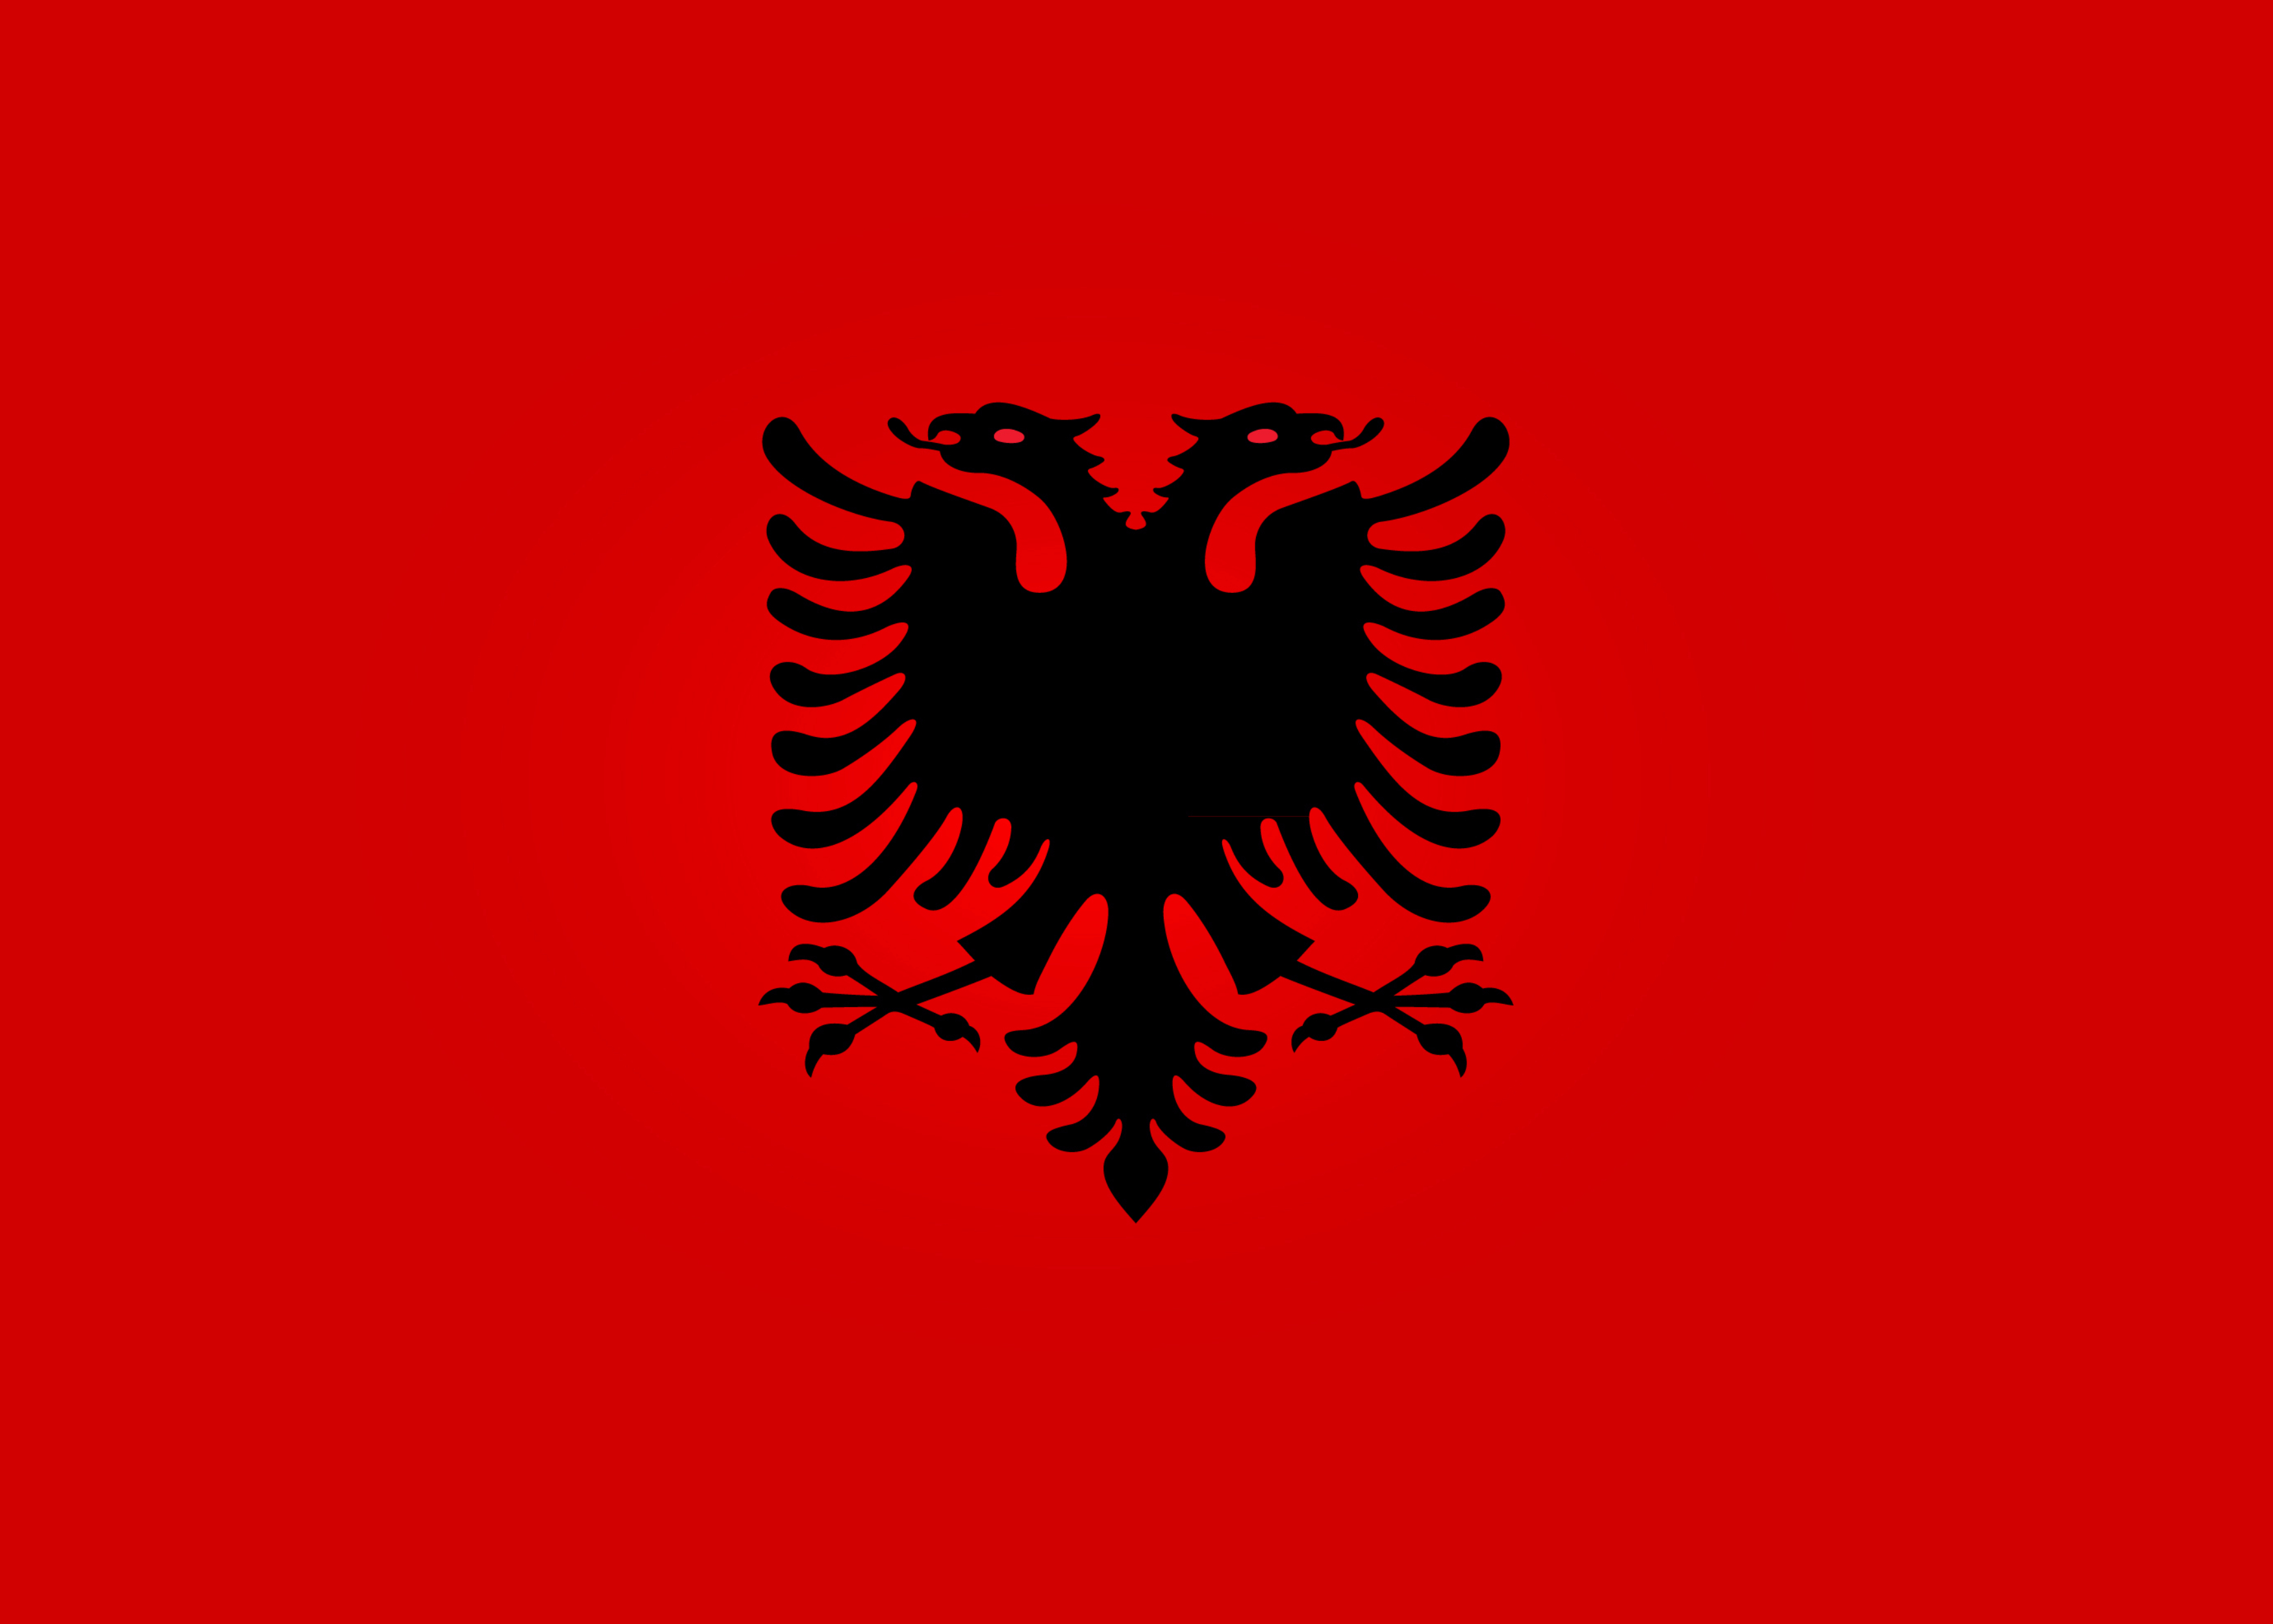 The National Flag of Albania - Flamuri Kombëtar  features a red background with a double-headed eagle placed in the center.